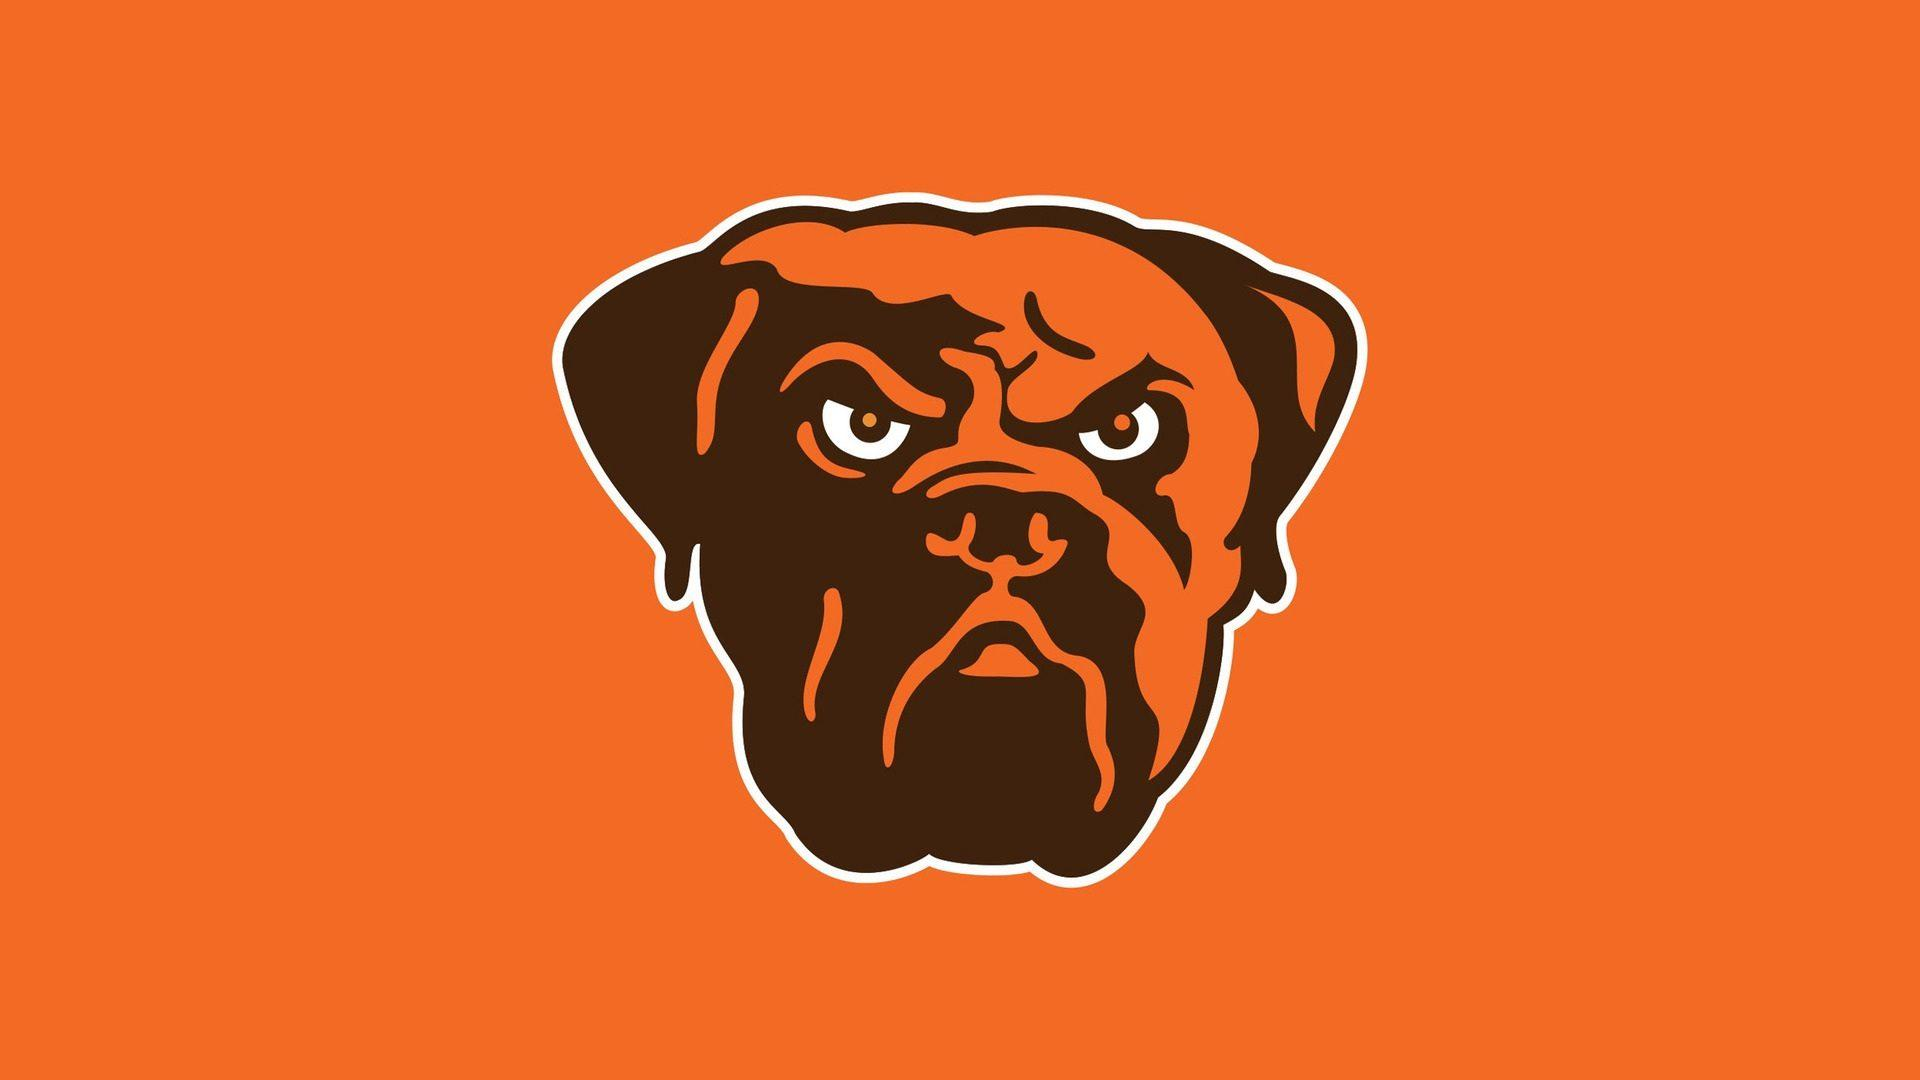 Cleveland Browns Mascot Wallpaper